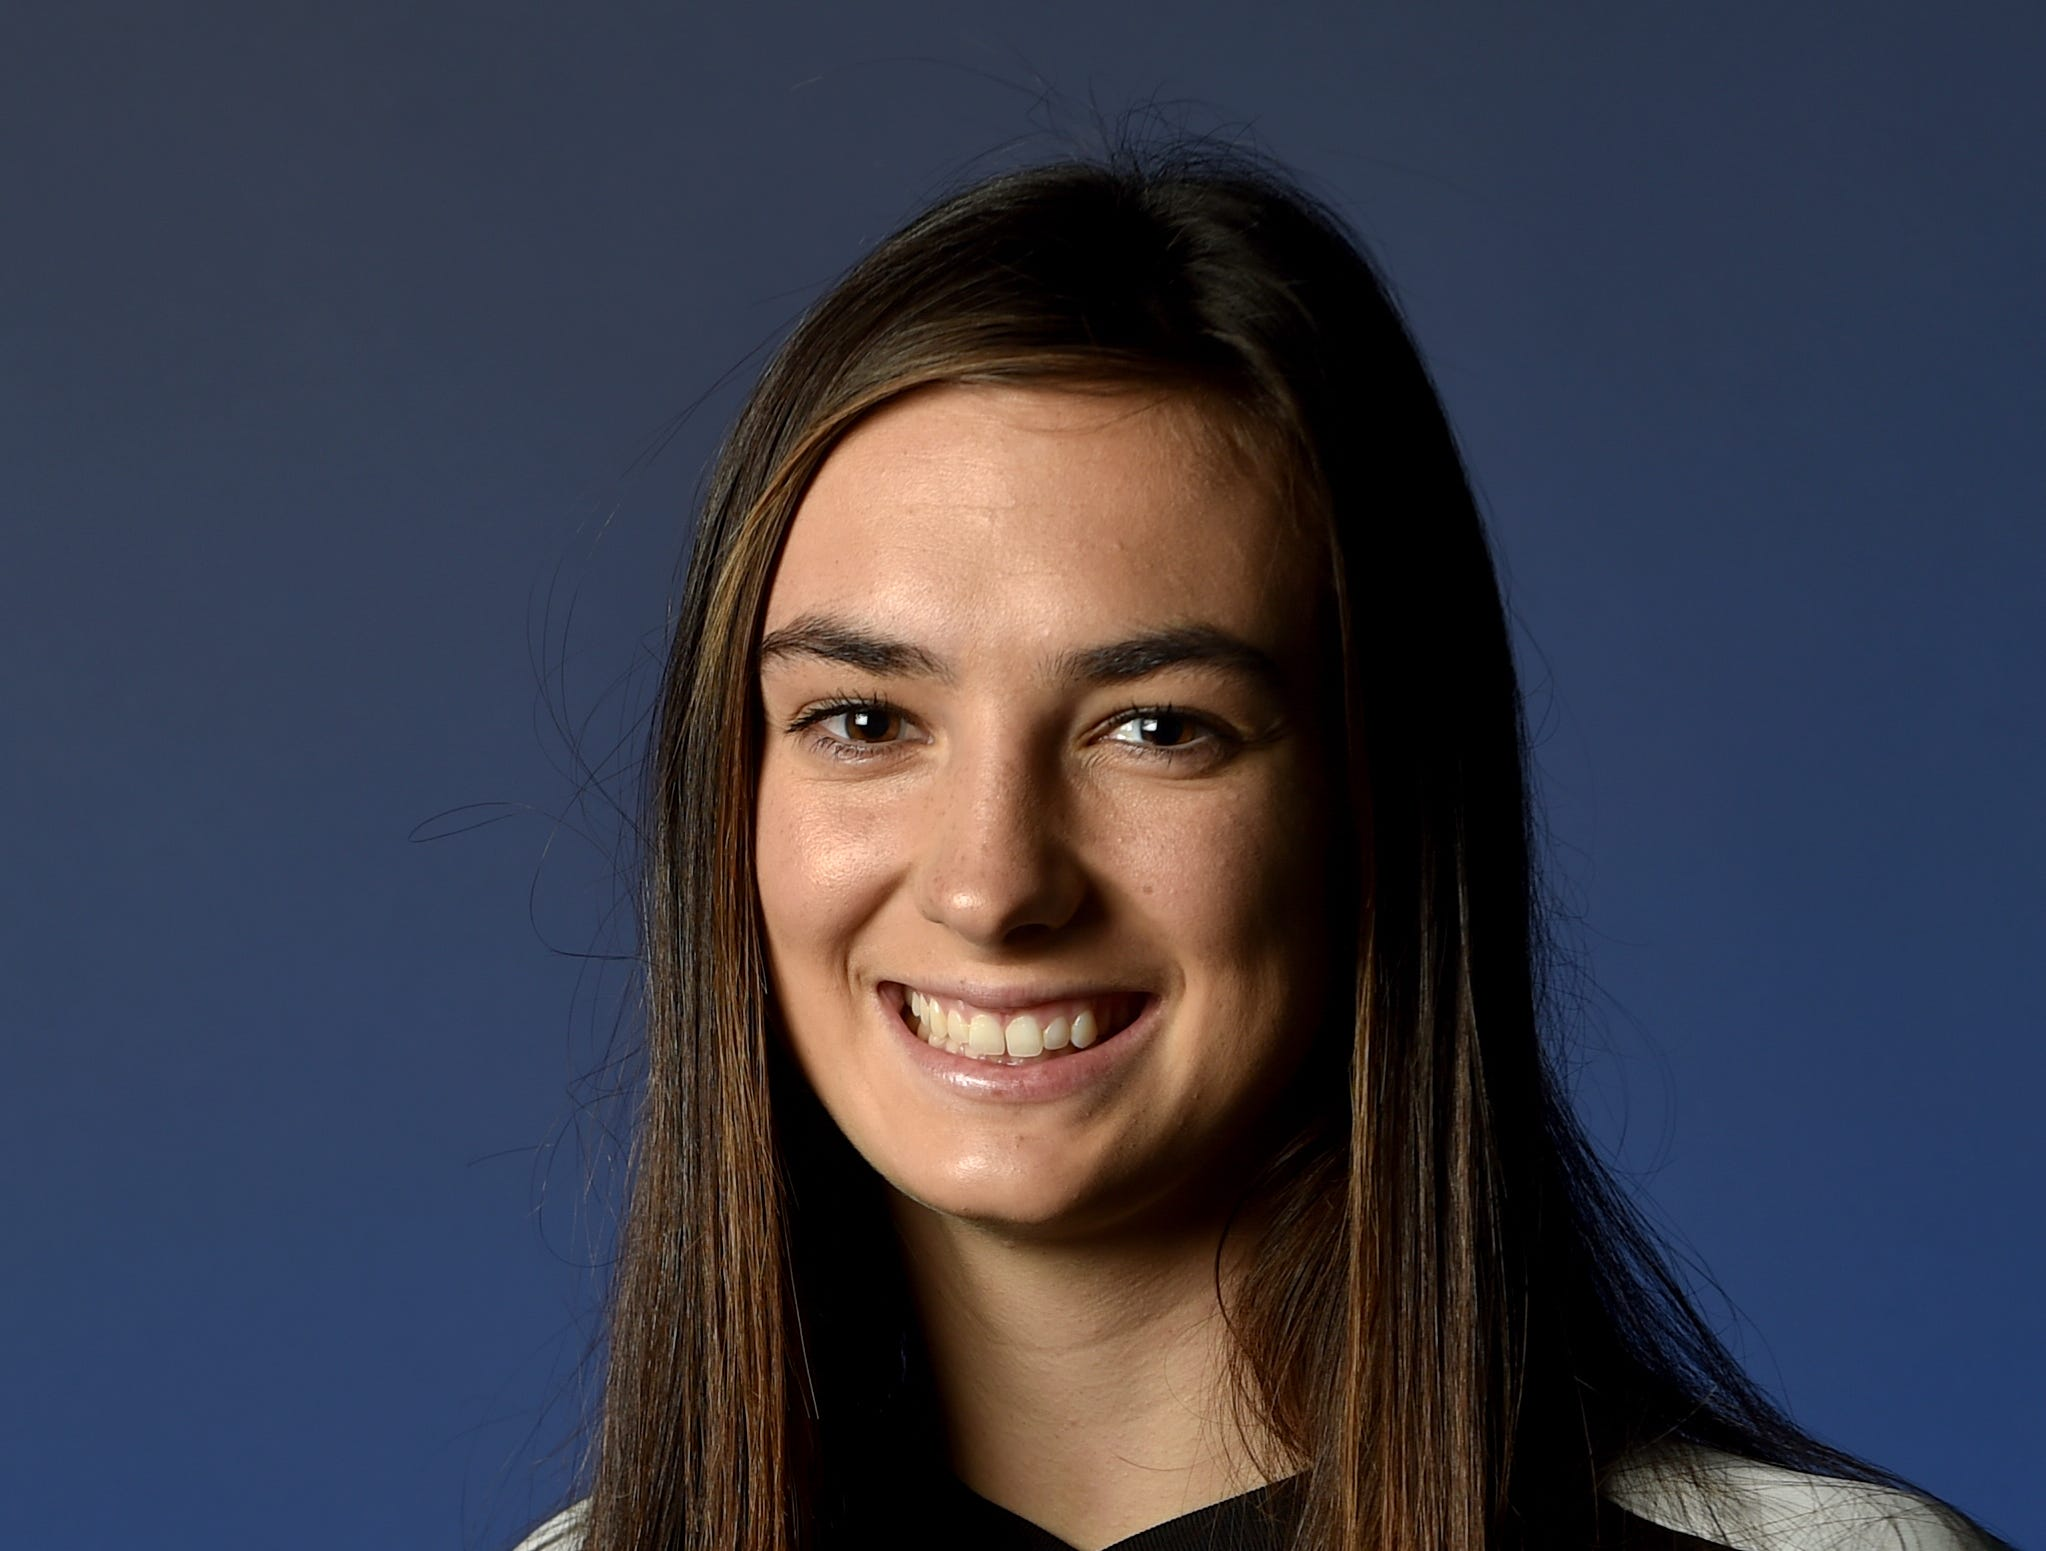 "PEYTON ERICKSON, Ventura: No one has been more productive on a soccer field locally over the past two seasons than the 5-foot-10 striker, who added 25 goals and 20 assists to her illustrious career as a senior. The Pacific View League Offensive Player of the Year was All-CIF and The Star's Player of the Year as a junior. She finished with a school-record 65 career goals. An excellent student, Erickson has a 4.5 GPA, is an AP Scholar with Honor and has earned the California Seal of Biliteracy. She enjoys reading and hiking. She watches ""Friends,"" listens to Dan + Shay and eats lasagna. She roots for the U.S. women's national team and Alex Morgan is her favorite athlete."